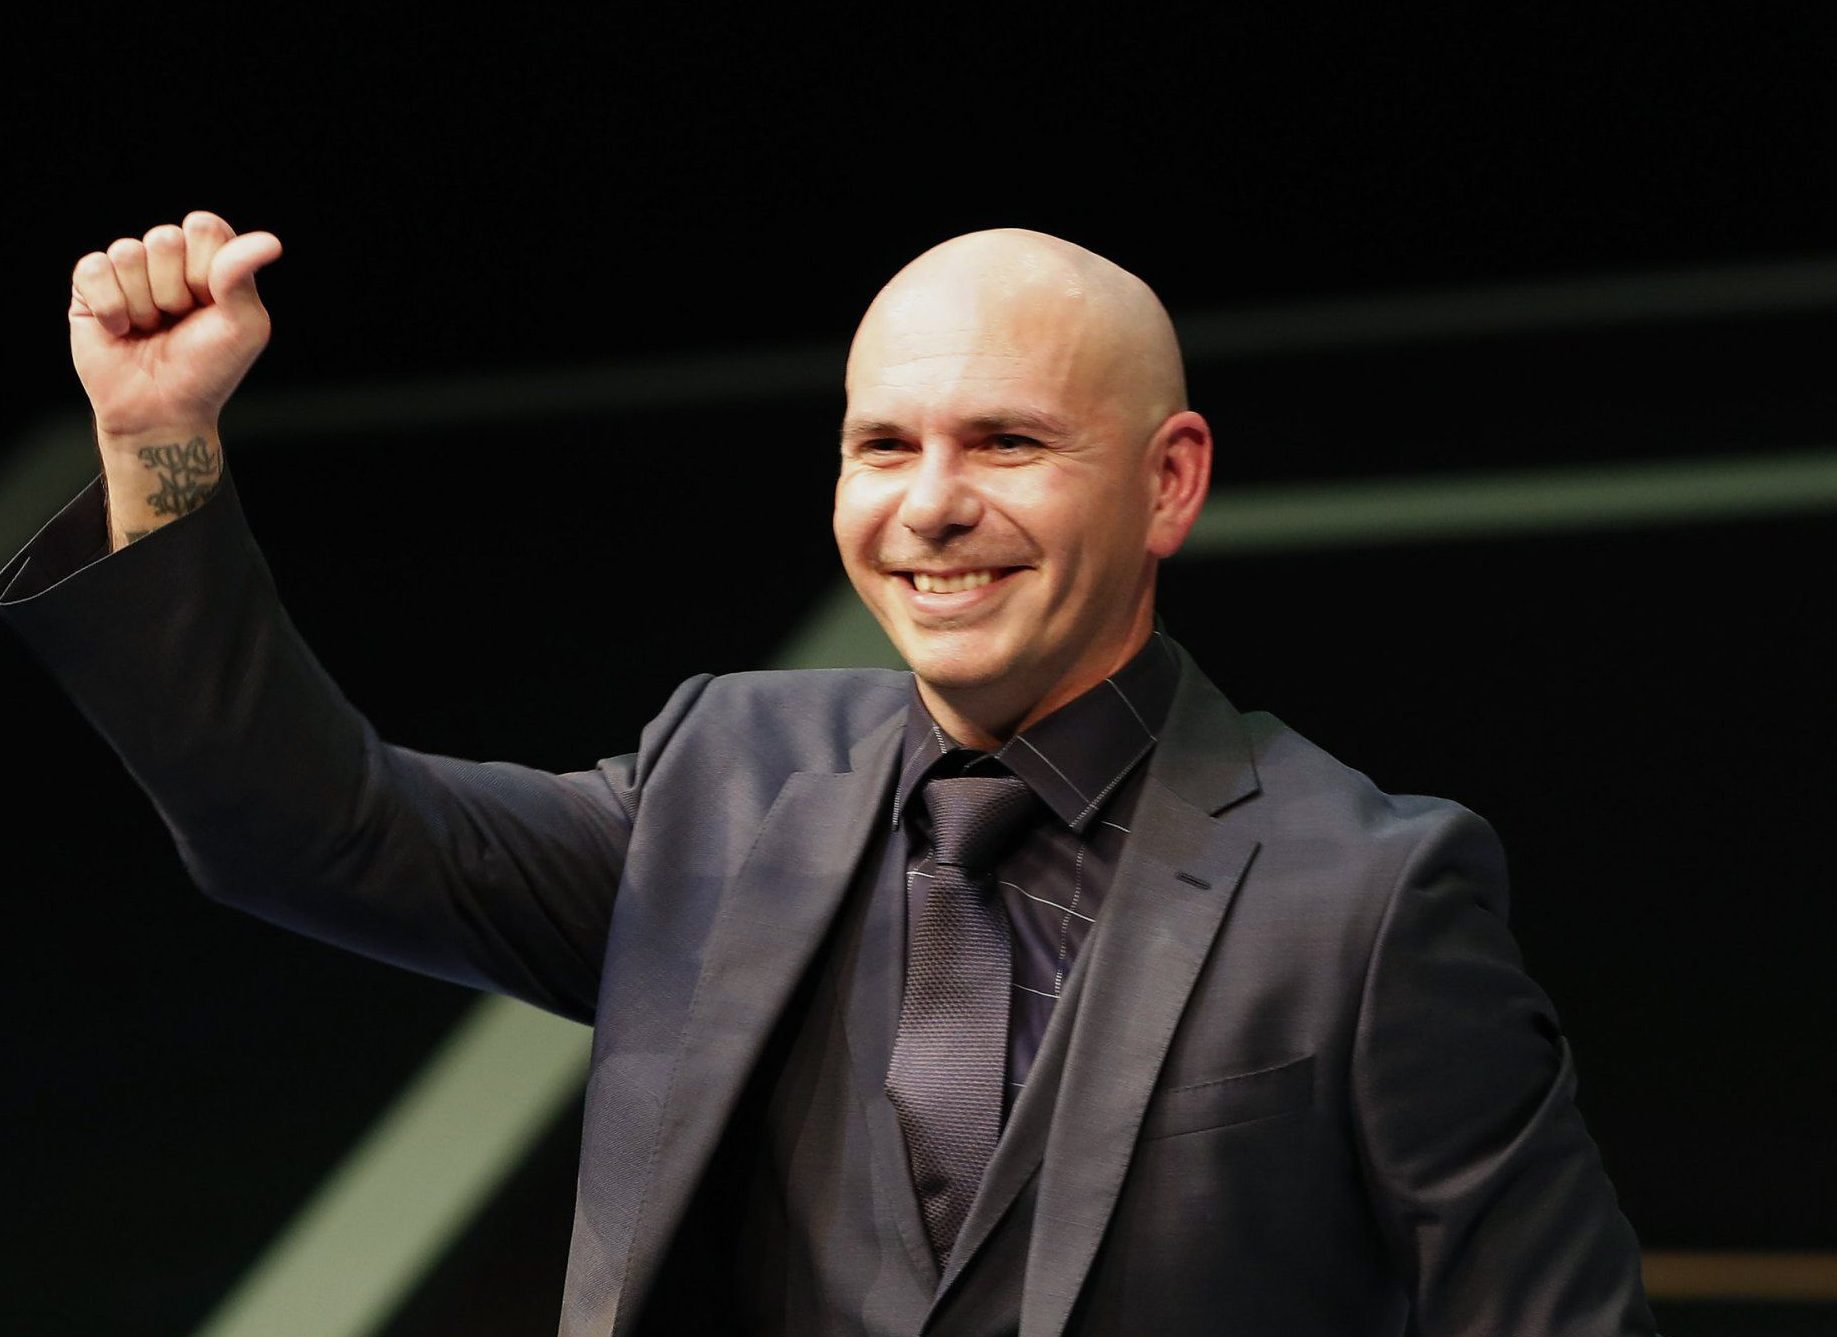 Pitbull lends private jet to help cancer patients in hurricane-torn Puerto Rico